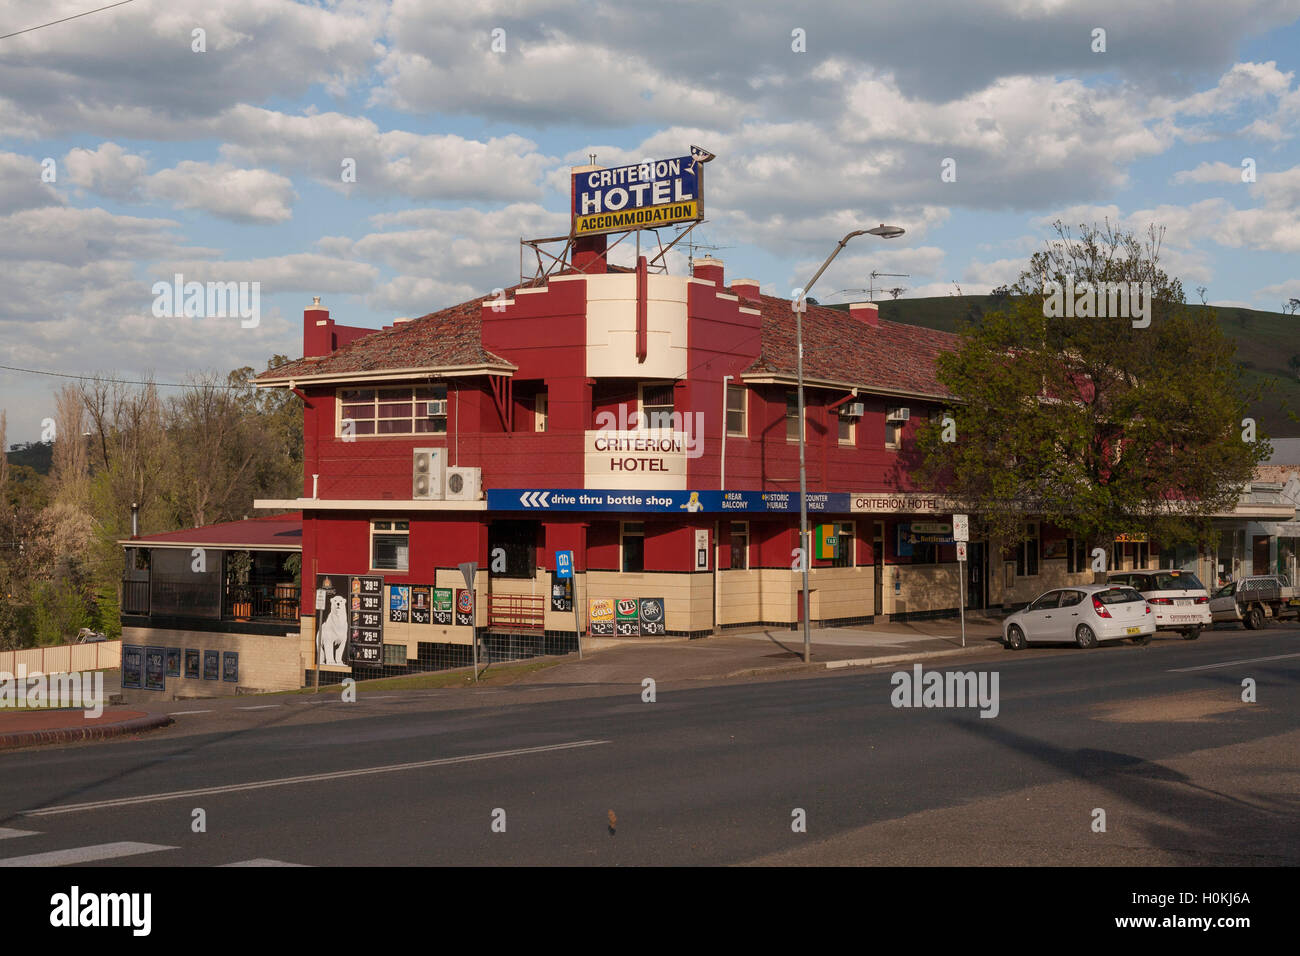 The historic art deco architectural style of the Criterion Hotel Sheridan Street Gundagai New South Wales Australia. - Stock Image